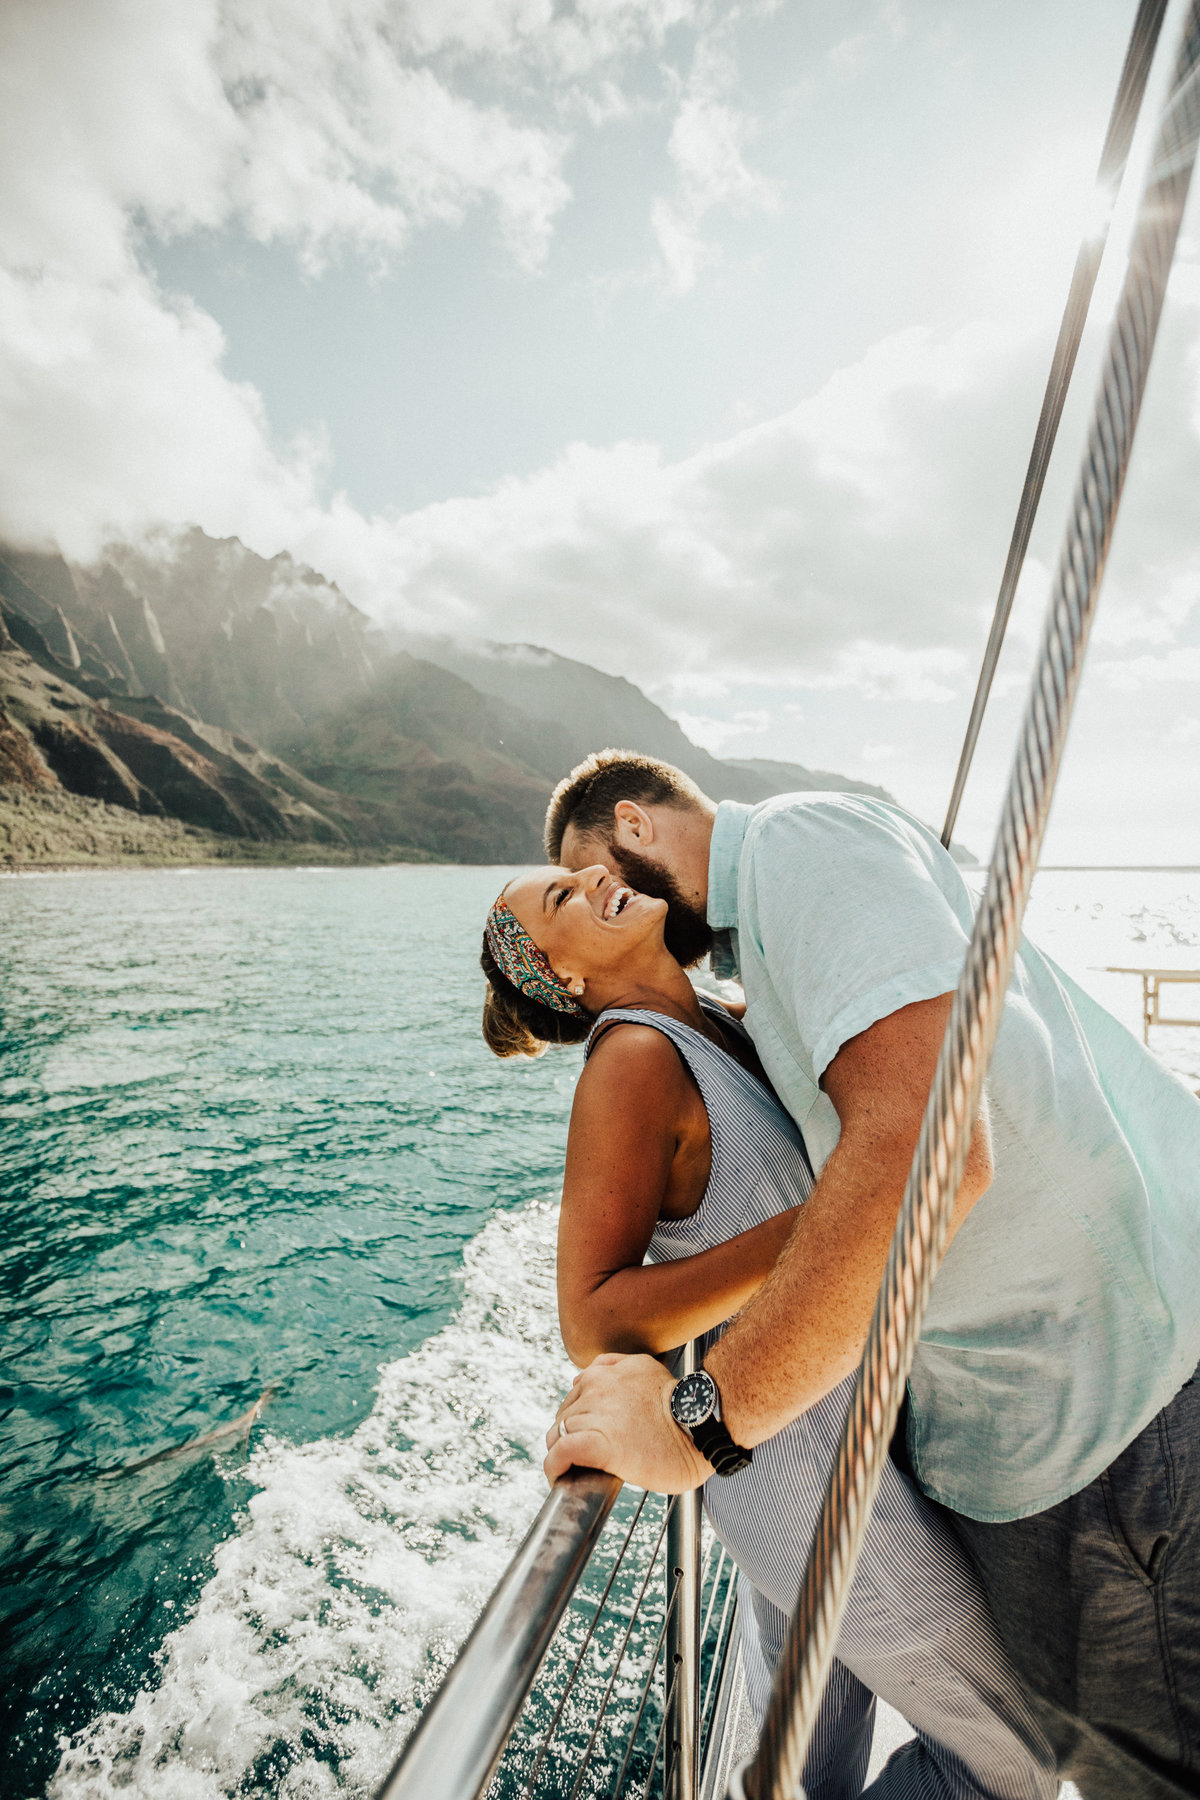 kauai-hawaii-napali-coast-couple-session-jordan-lee-dooley-soul-scripts-lindsey-roman-destination-elopement-photographer-56